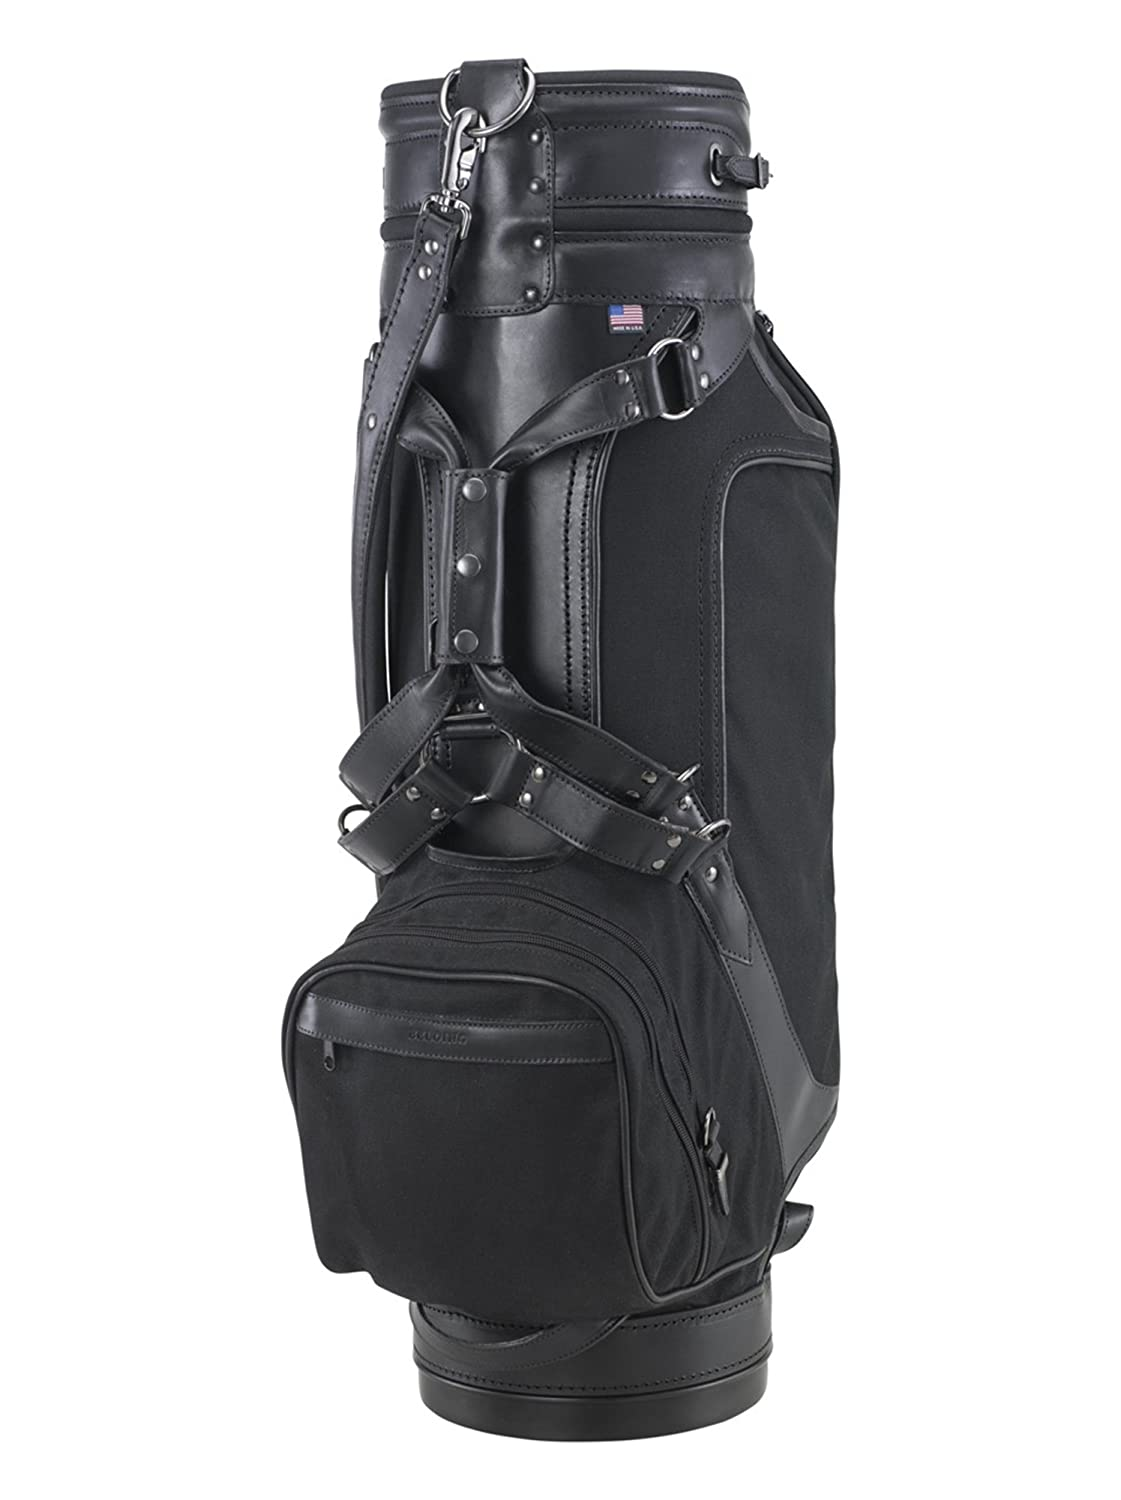 BELDING American Collection Staff Golf Cart Bag with 4 Pockets, X-Large